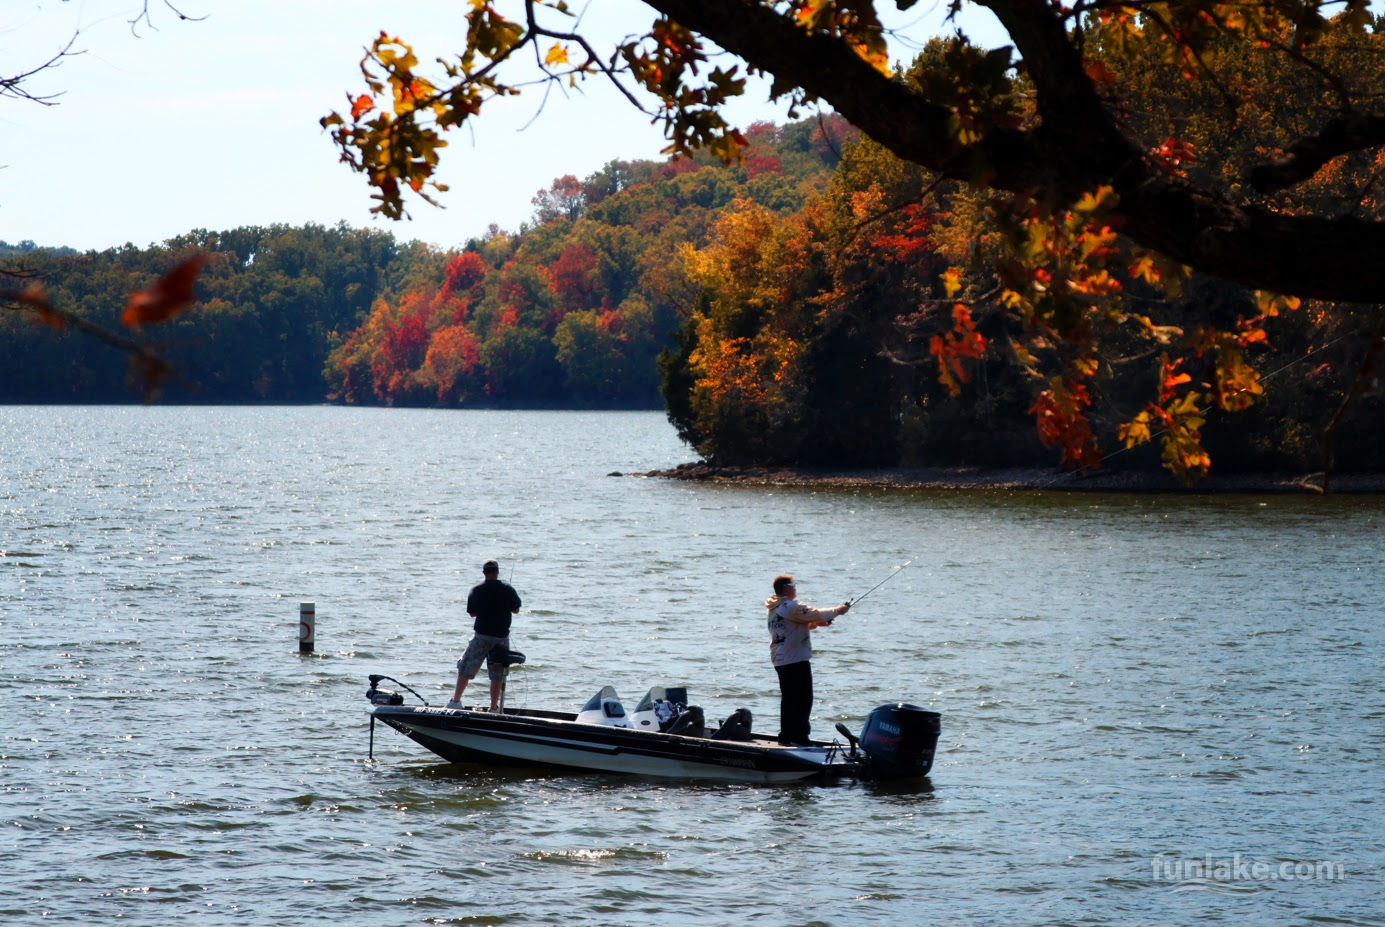 Lake of the ozarks mo the funlakemo blog october 2013 for Fishing lakes in missouri